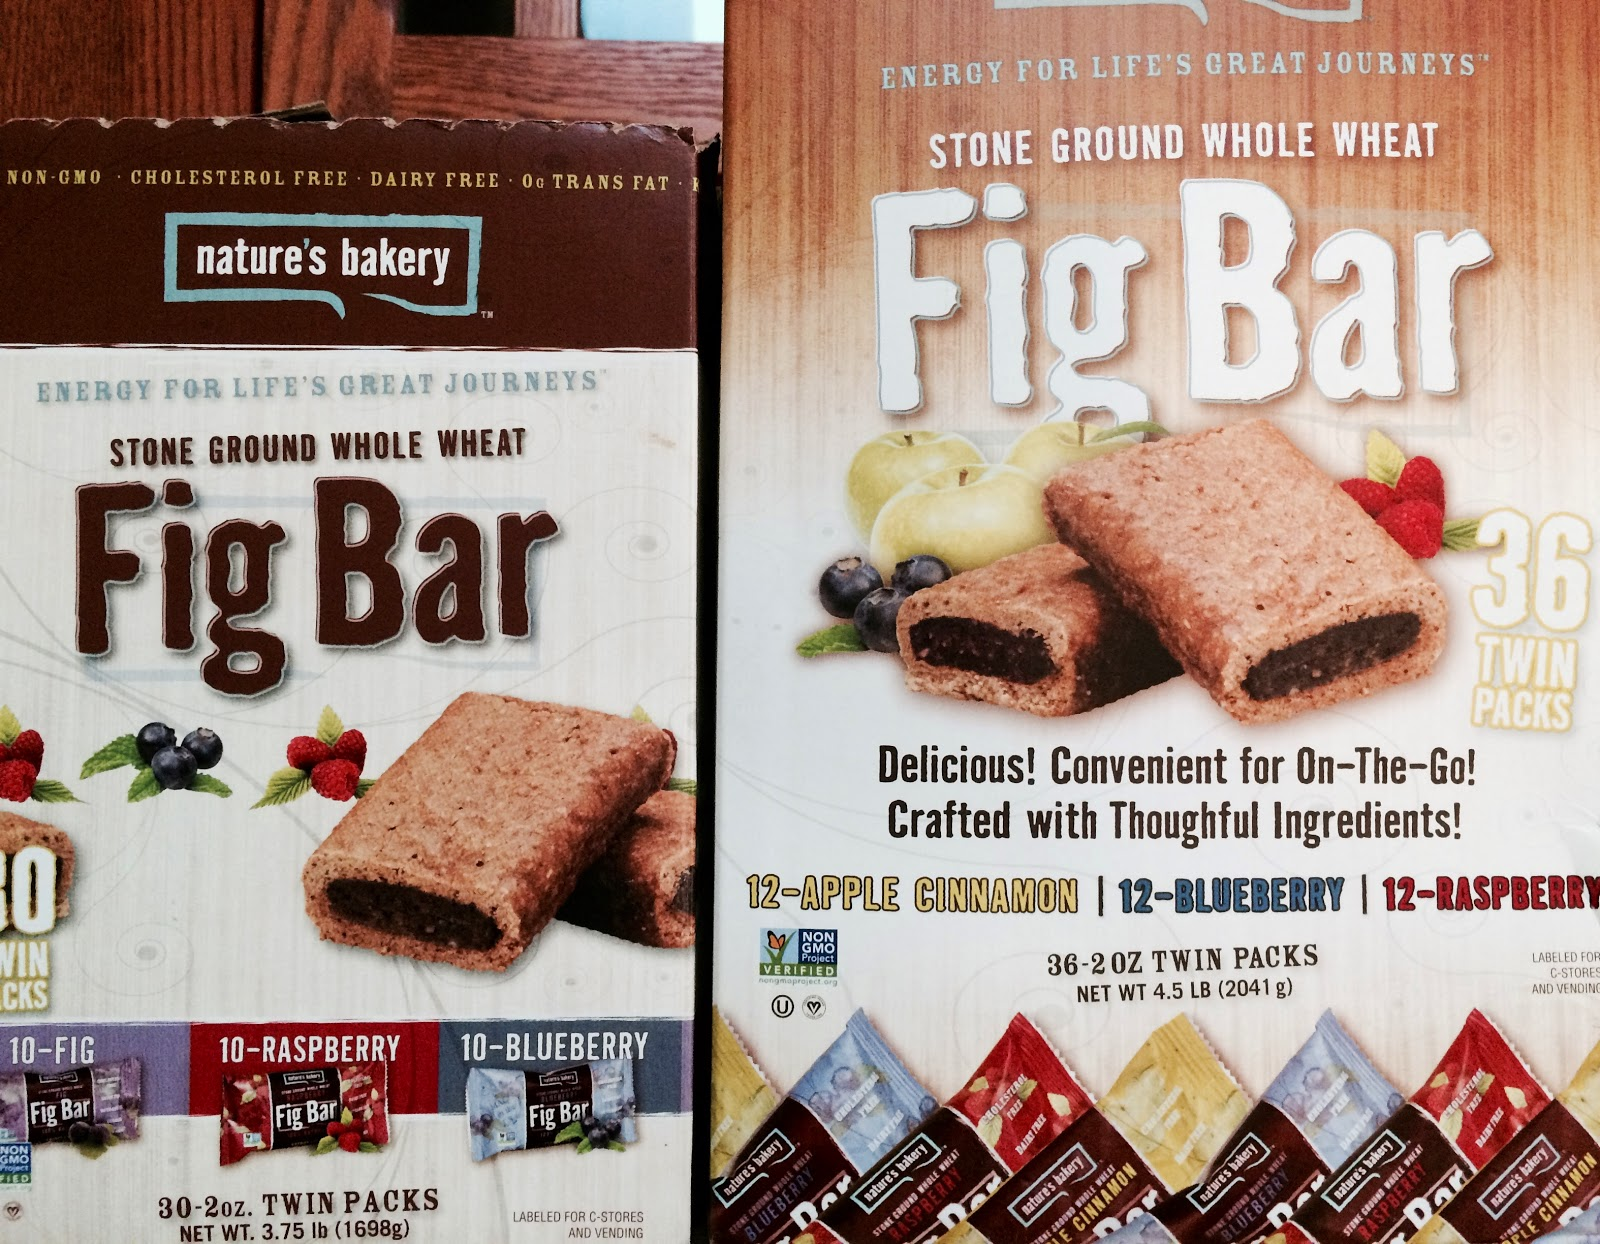 do you really know what you re eating if you re a dieter this the old and new boxes for nature s bakery fig bar from costco whole in hackensack there are six more twin packs in the larger box but those who love